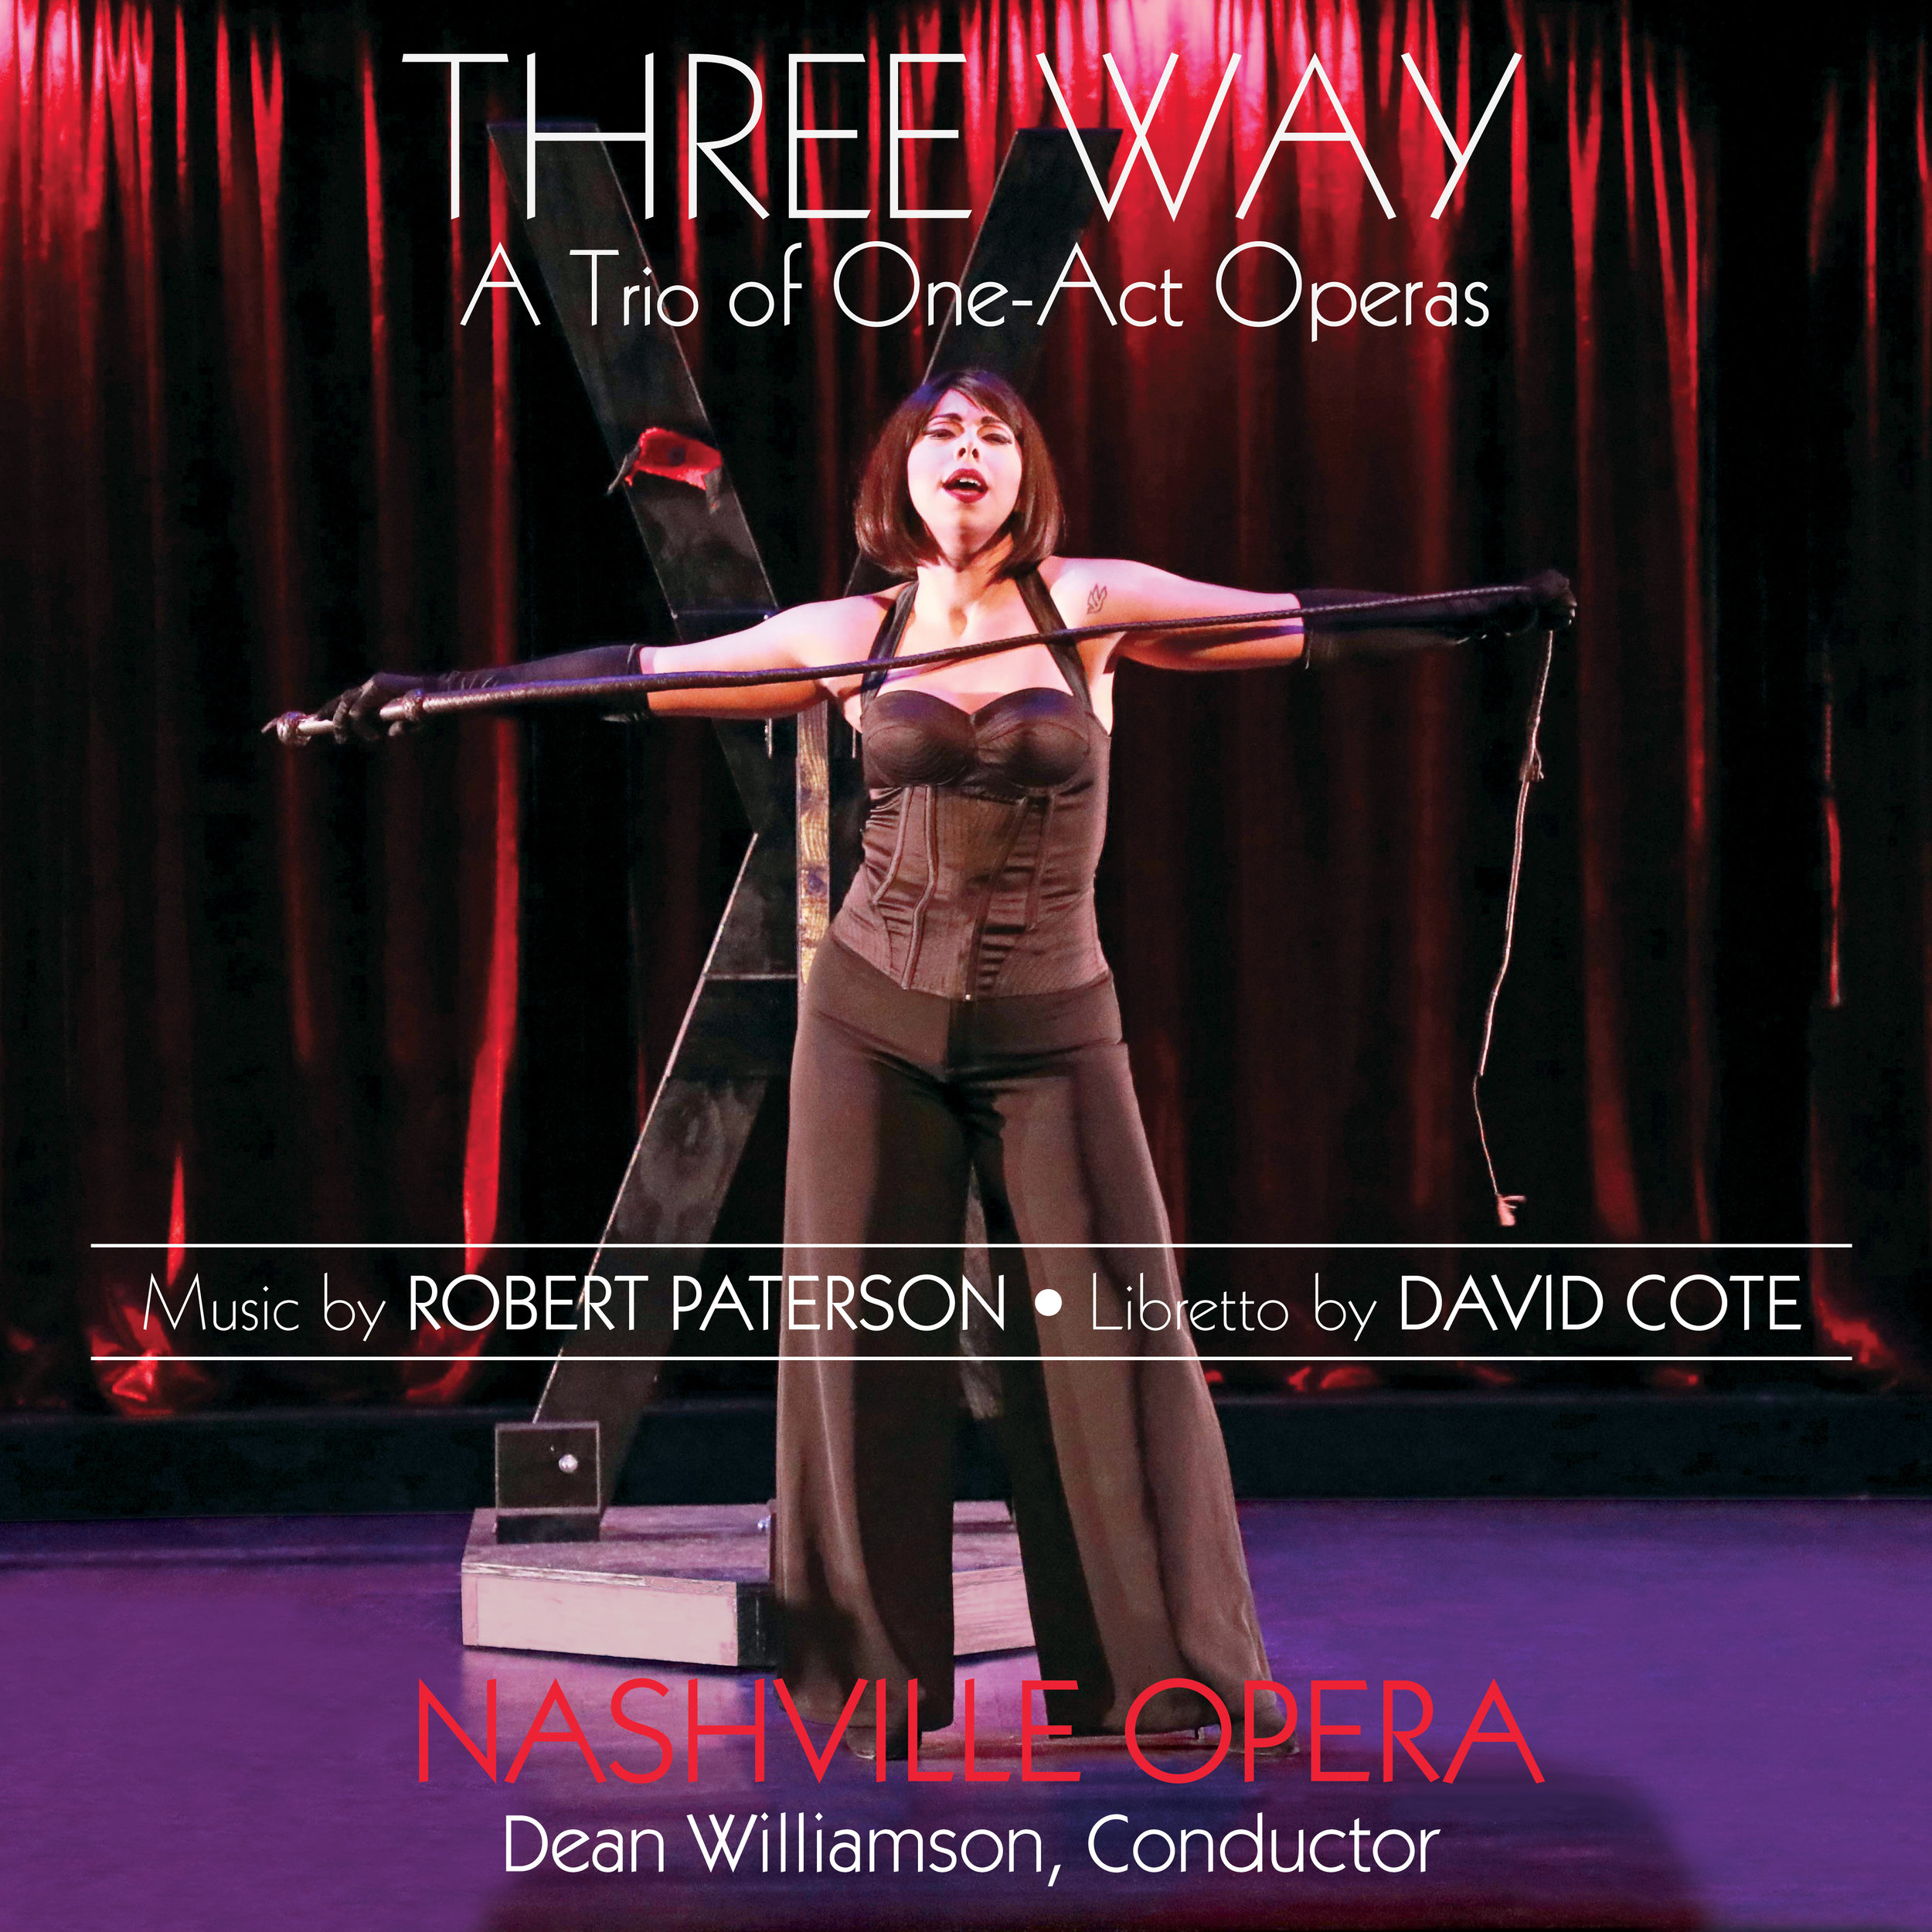 Three Way: A Trio of One-Act Operas